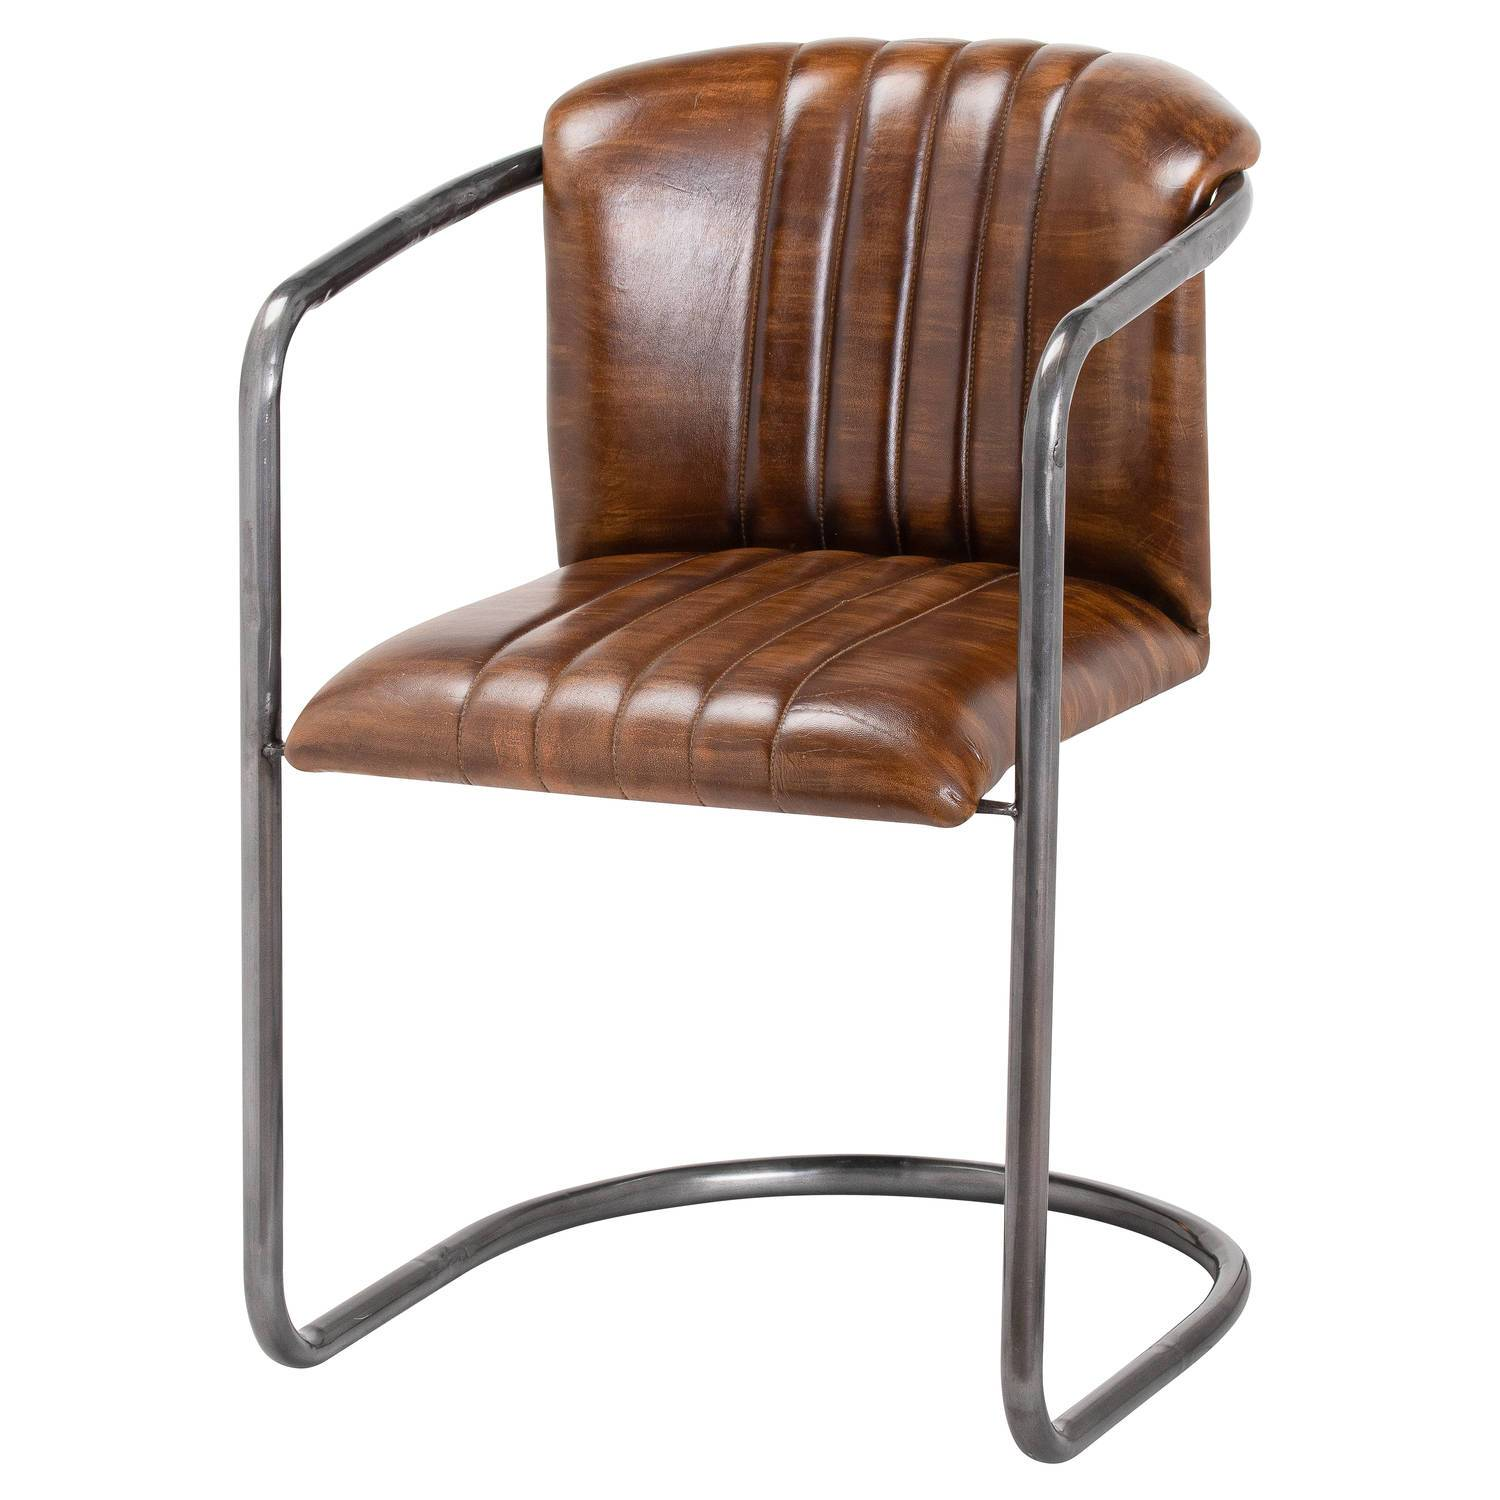 Harvey Collection The Brooklyn Leather Dining Chair Set - Brown